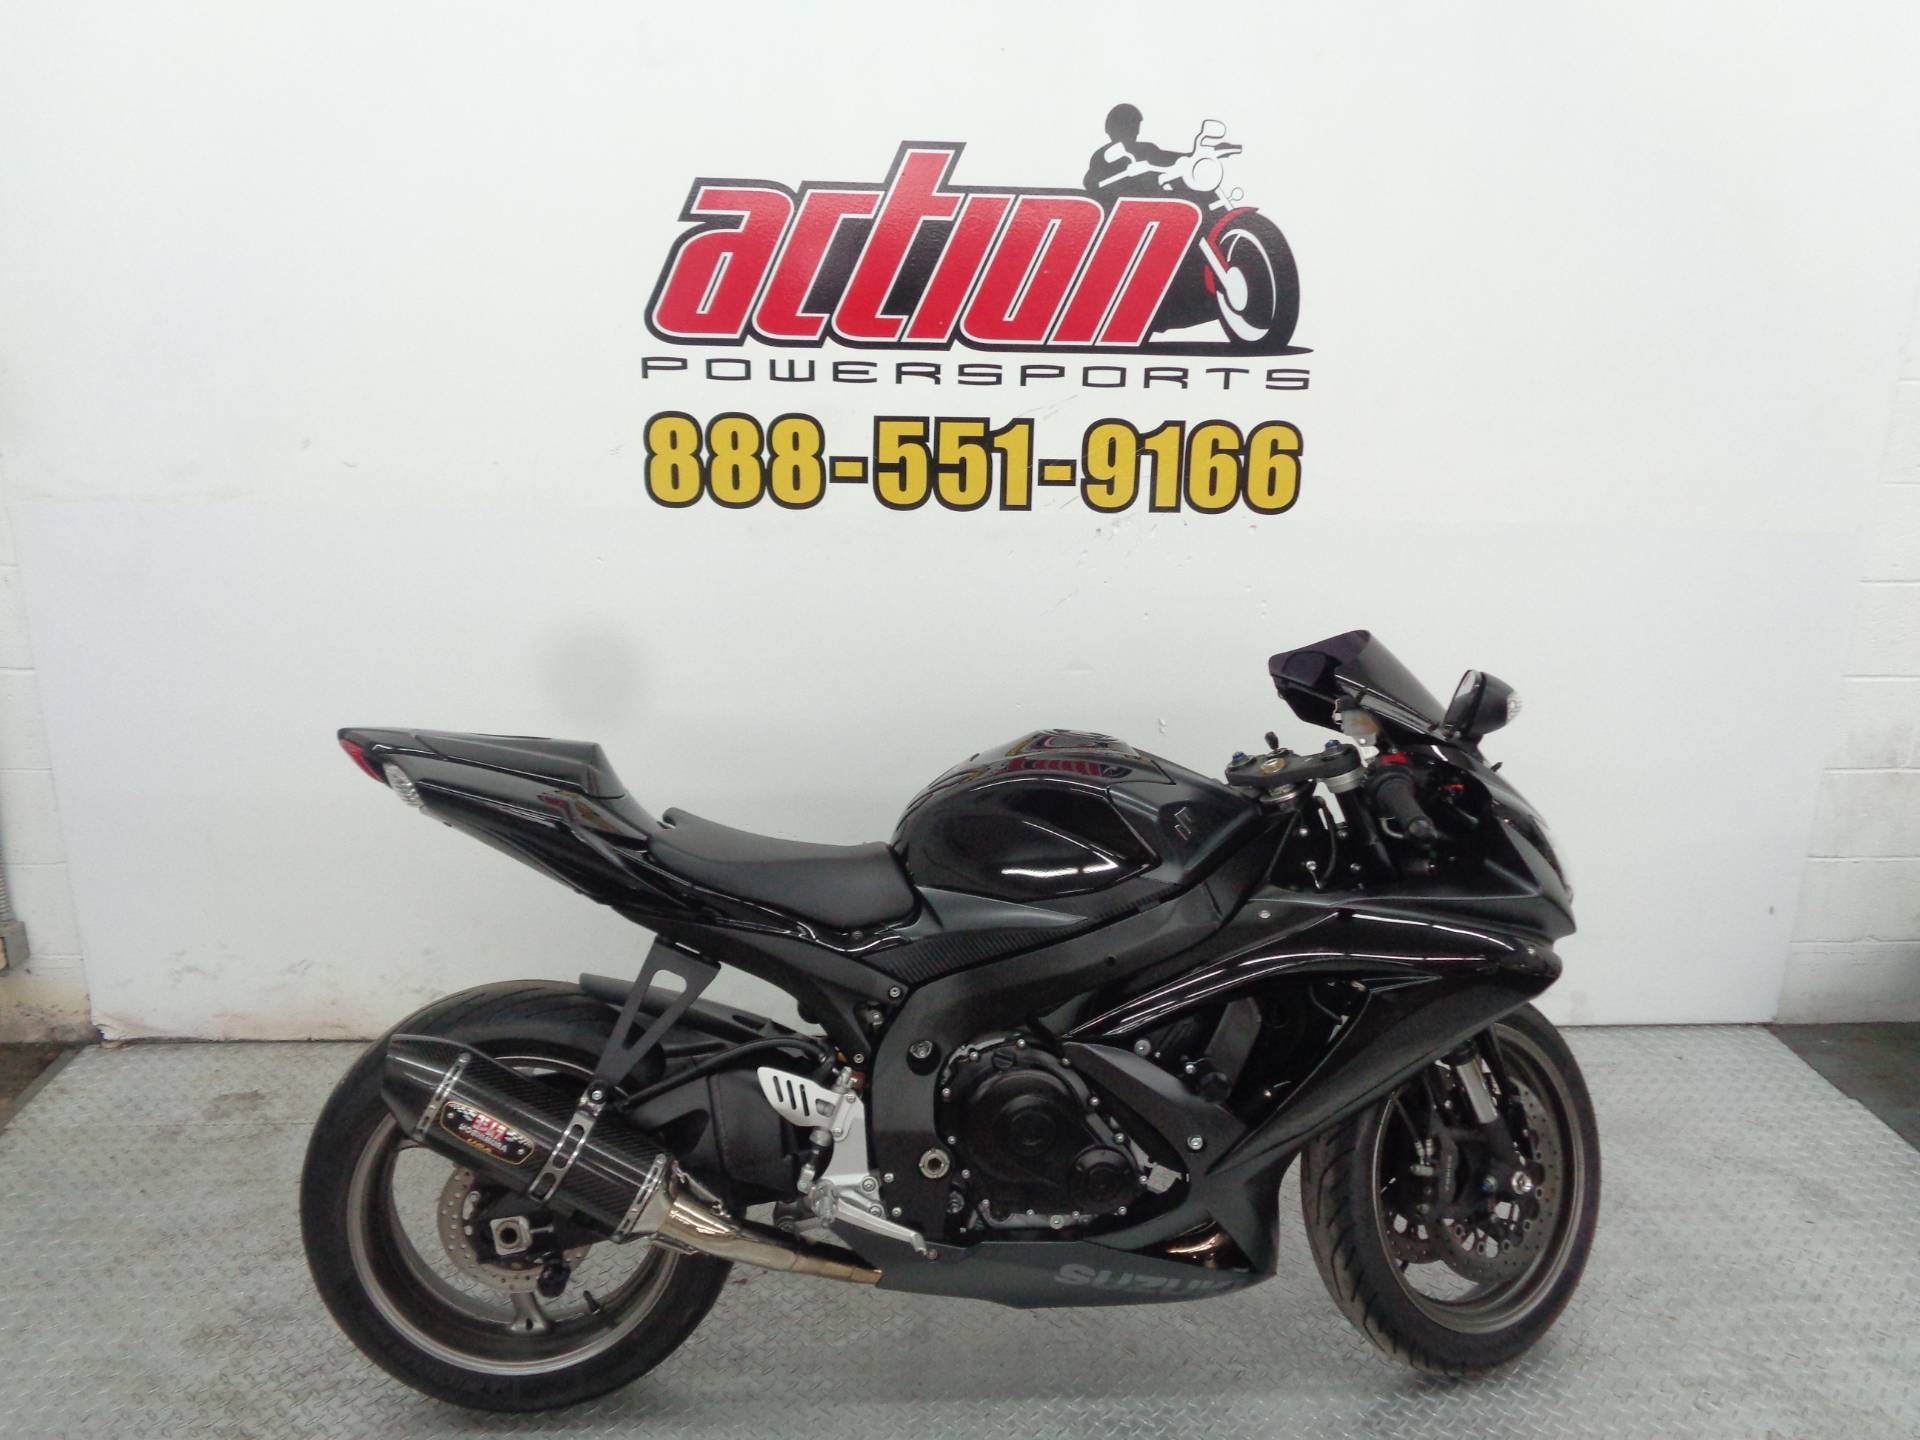 2009 Suzuki GSX-R750 in Tulsa, Oklahoma - Photo 1